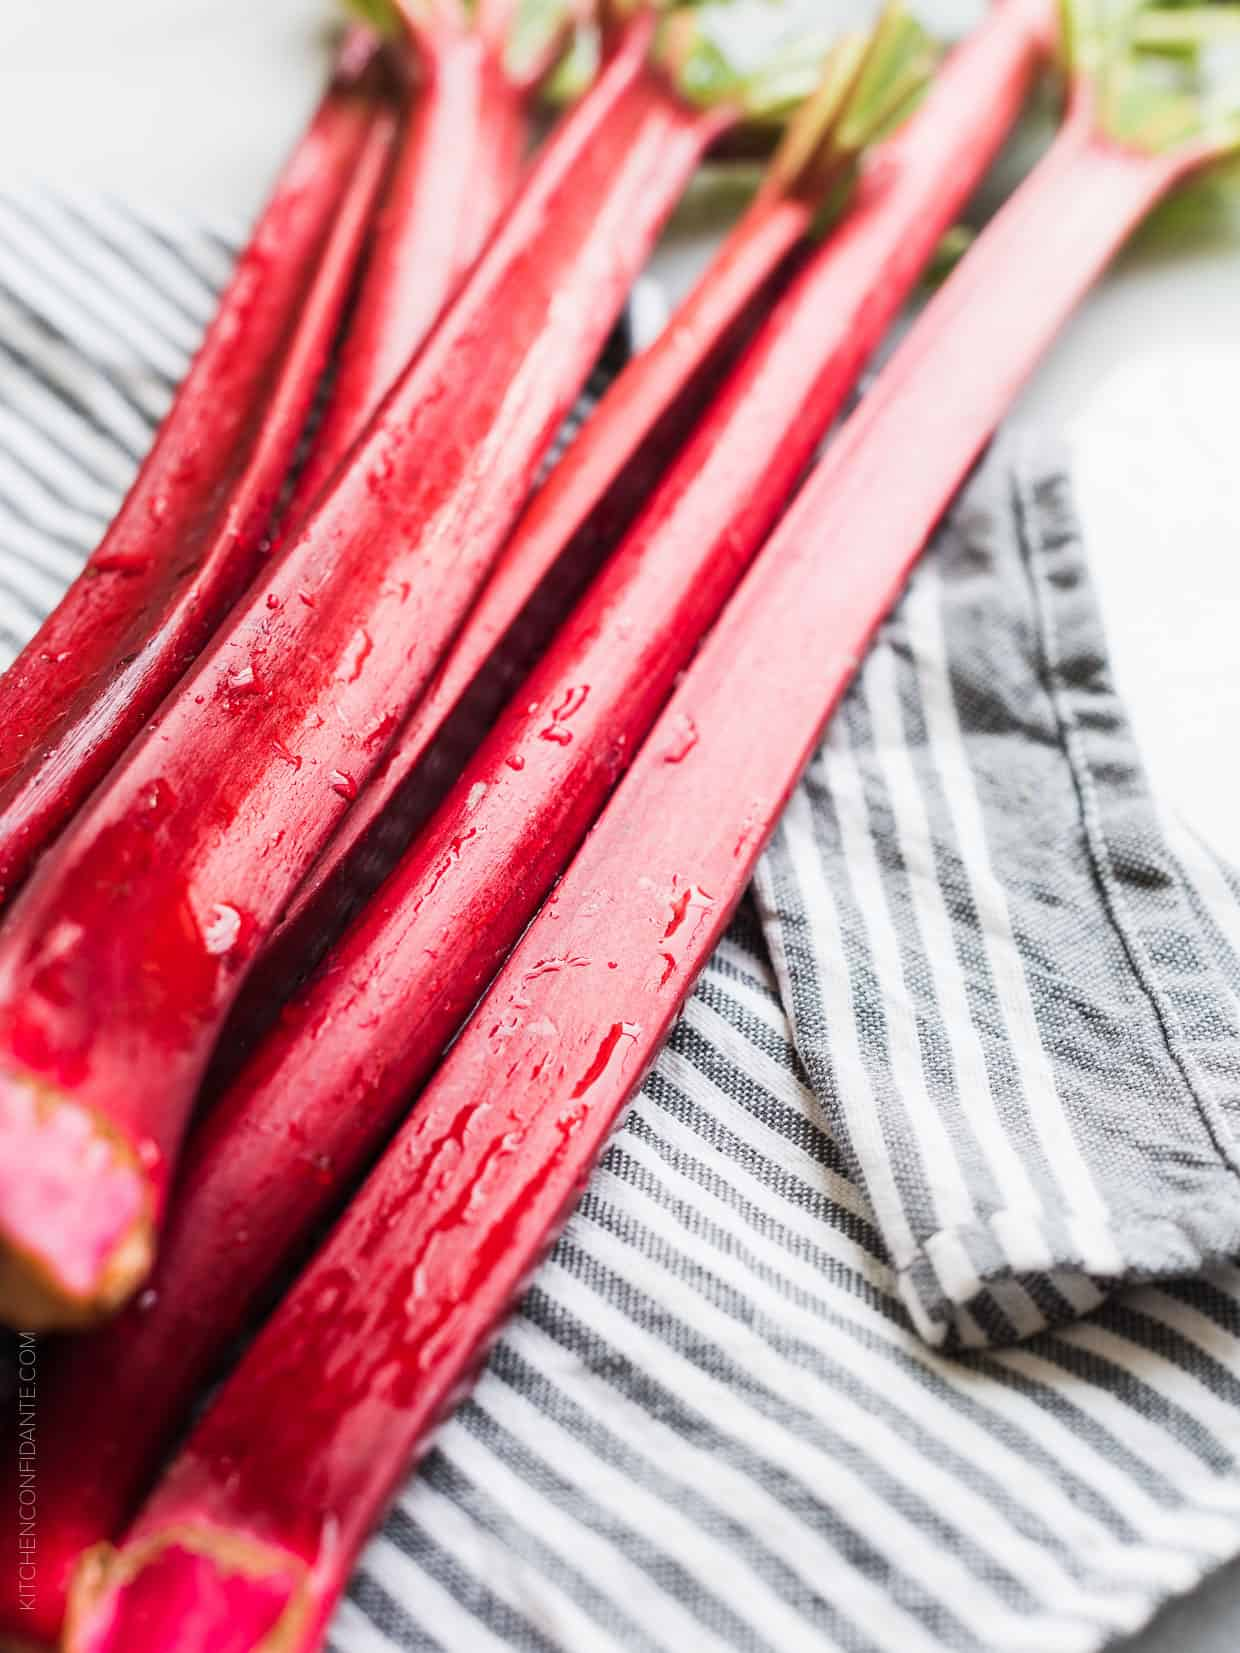 Stalks of freshly washed rhubarb on a blue and white striped towel.